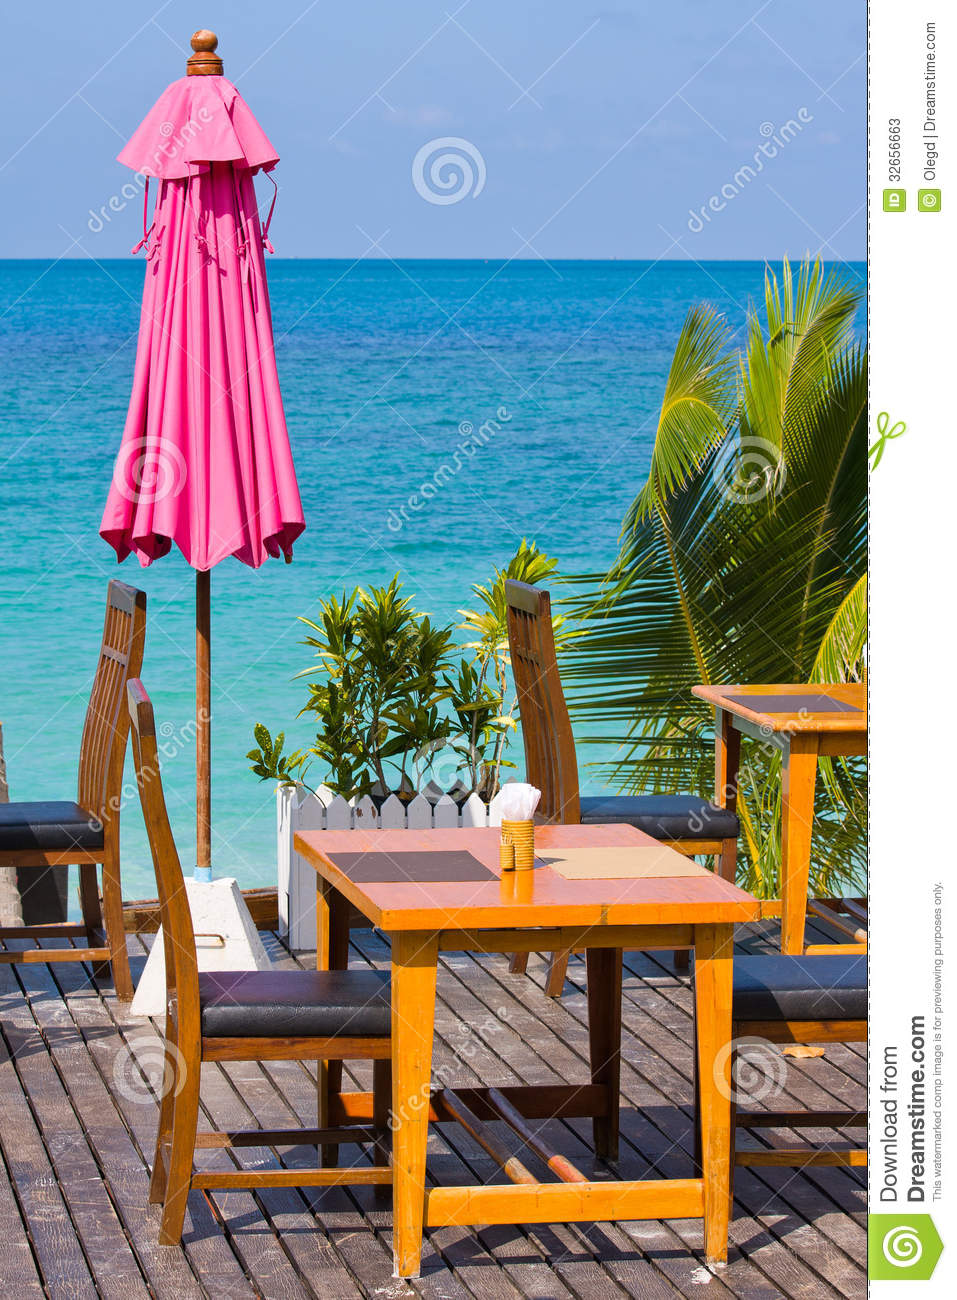 Table and chairs on the beach stock photos image 32656663 for Table 99 koh samui